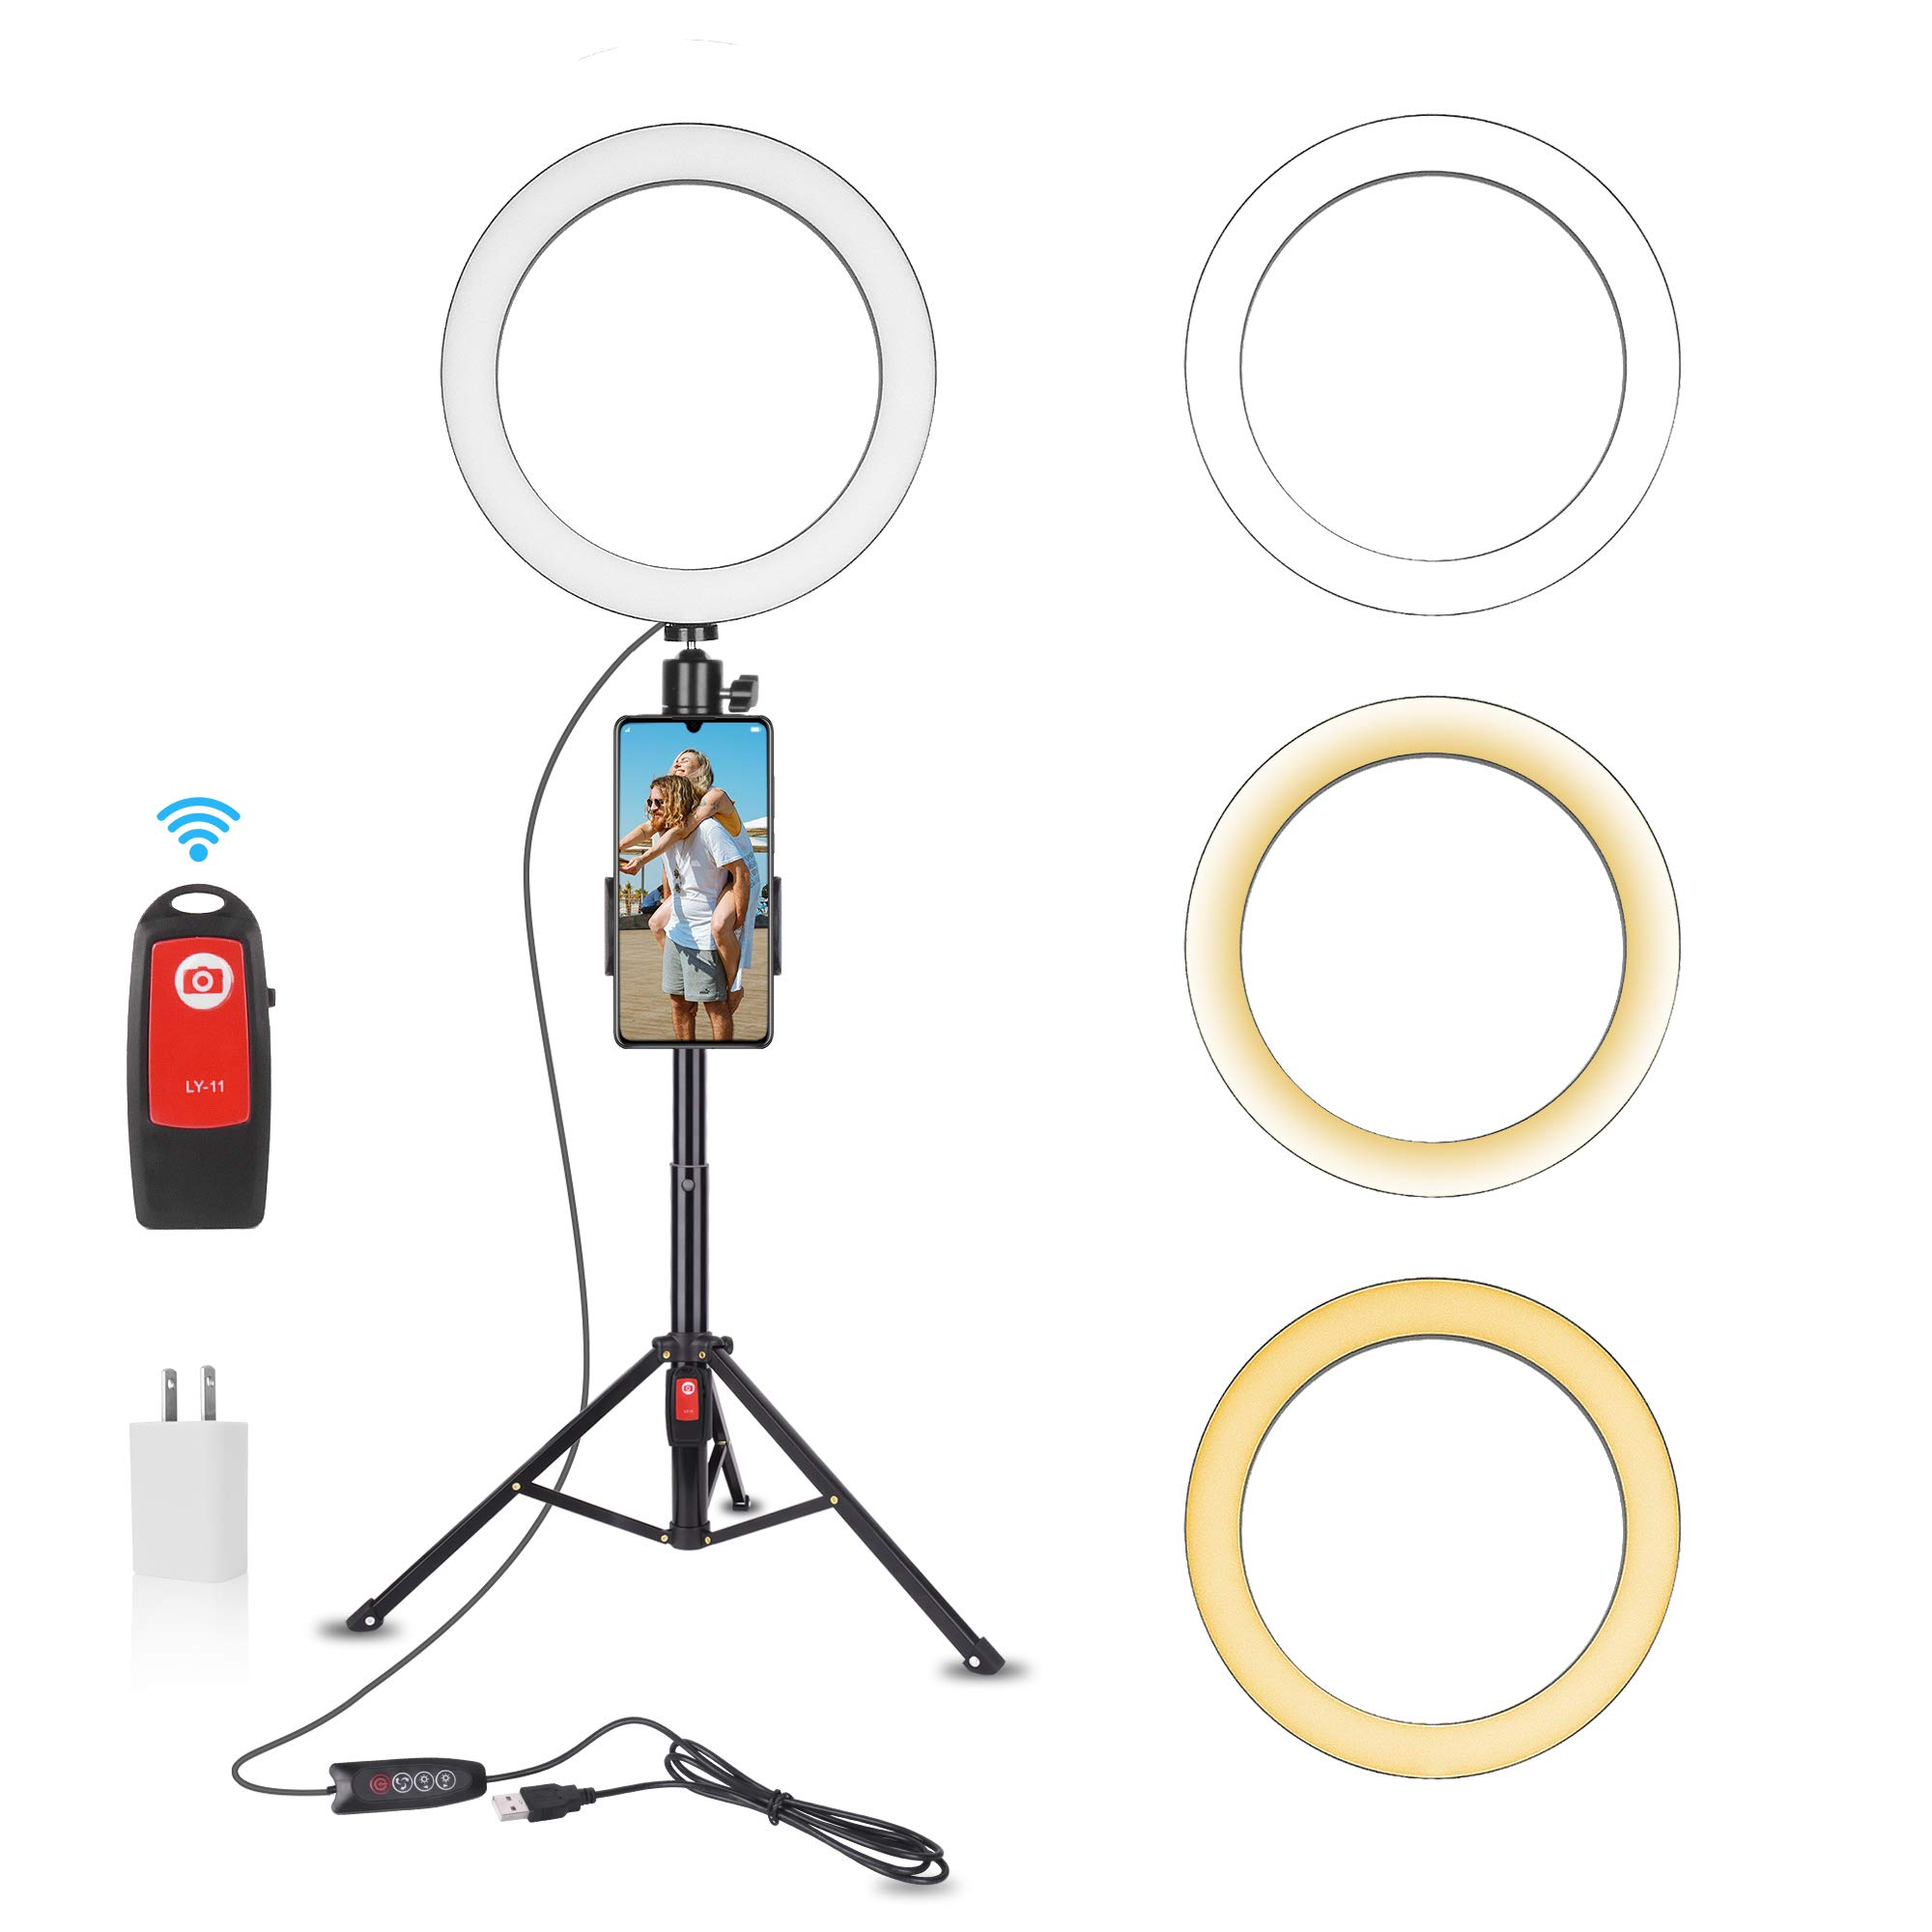 Emart 10-inch Selfie Ring Light with Adjustable Tripod Stand & Cell Phone Holder for Live Stream, YouTube Video, Makeup,Dimmable LED Camera Ringlight with 3 Light Modes & 11 Brightness Levels by EMART